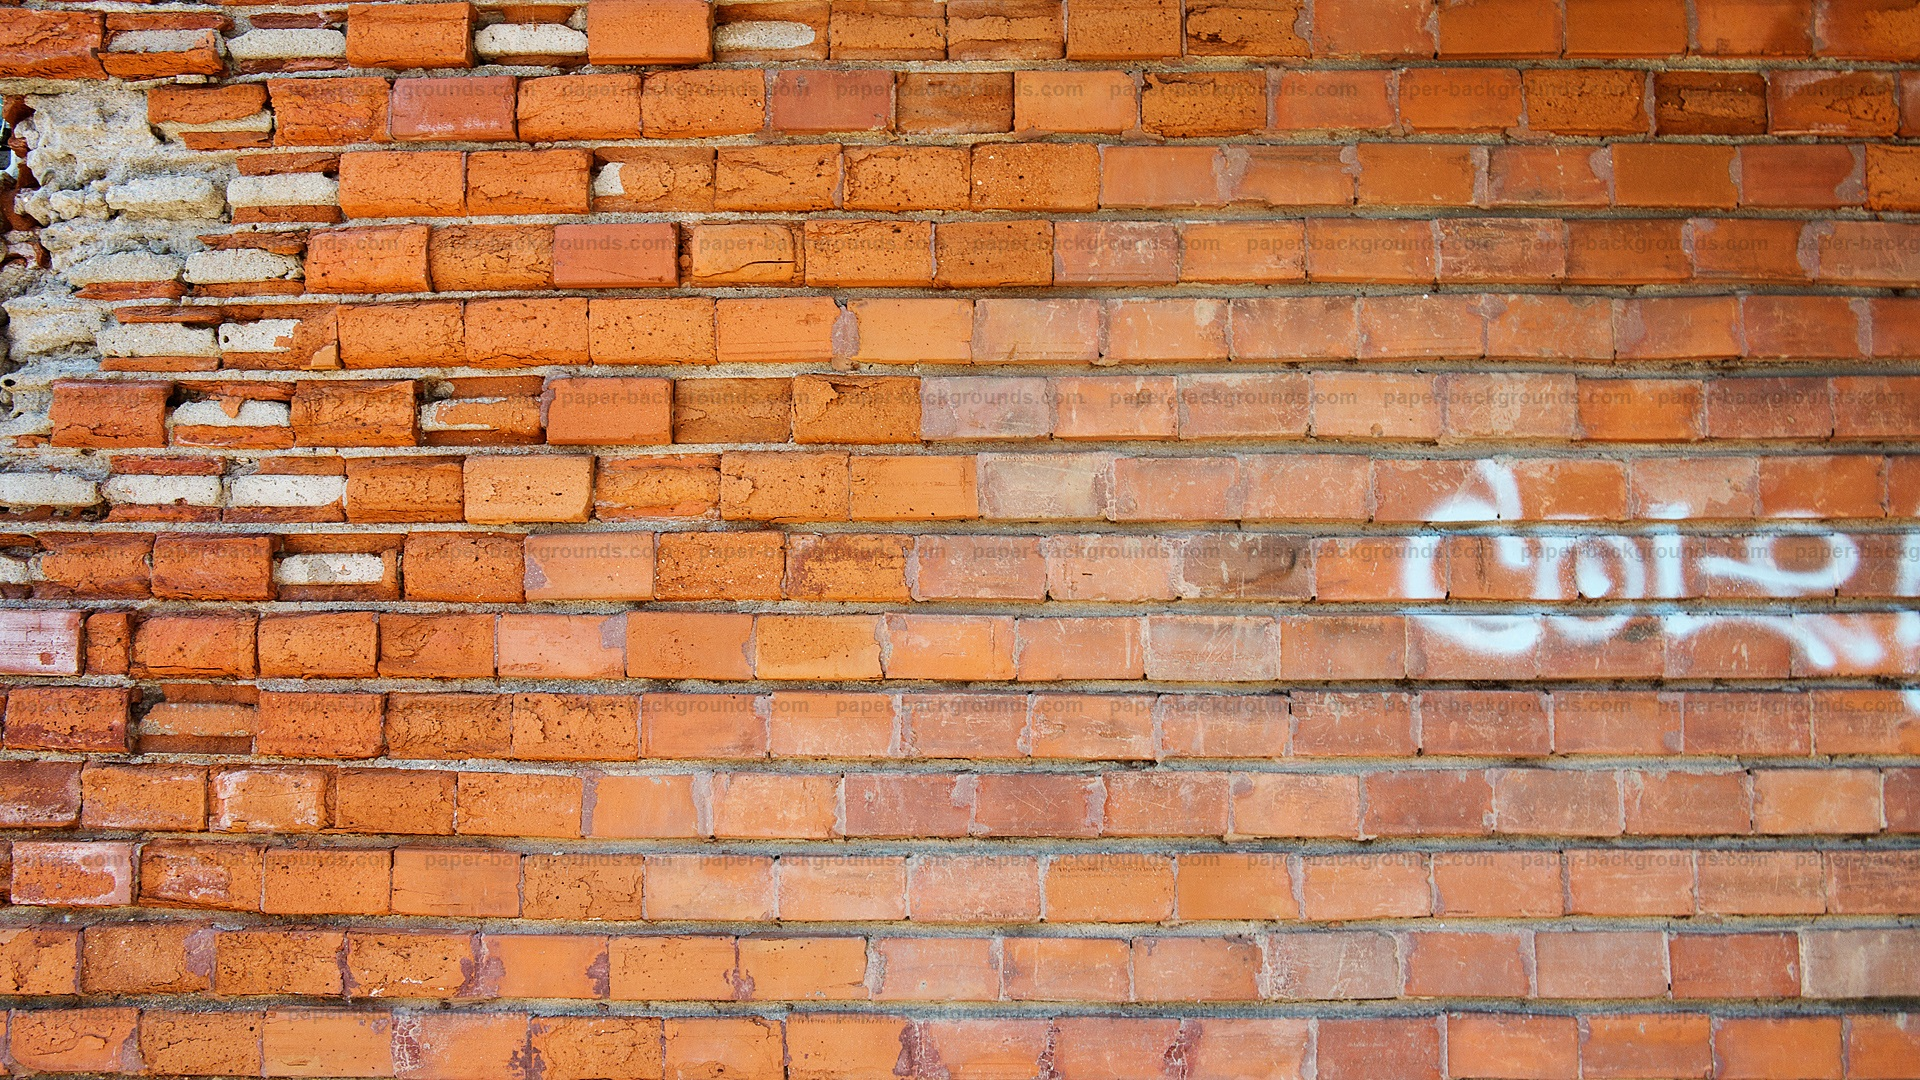 background brick old ground back textureimages 1920x1080